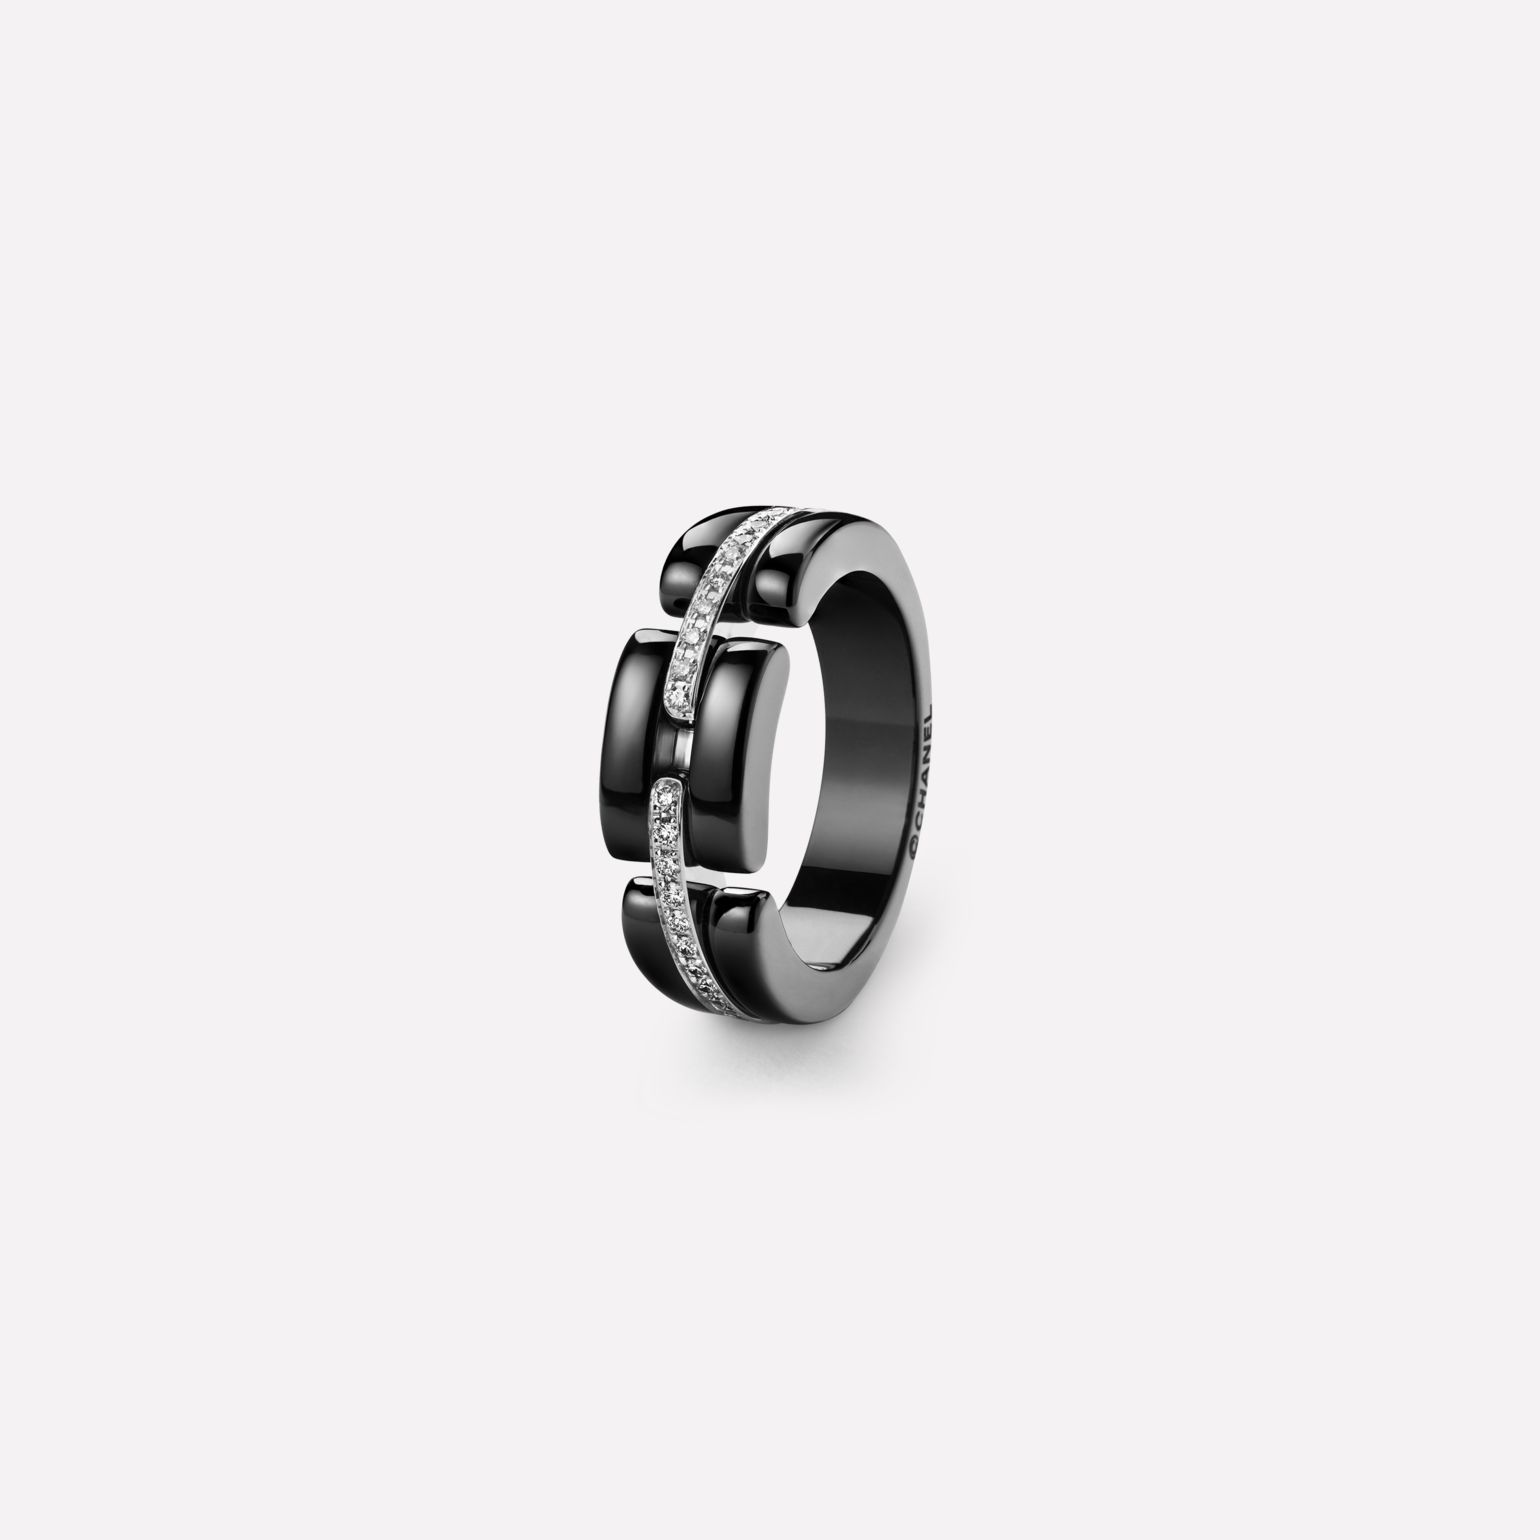 Ultra Ring Ultra ring in black ceramic, 18K white gold and diamonds. Medium, rigid version.